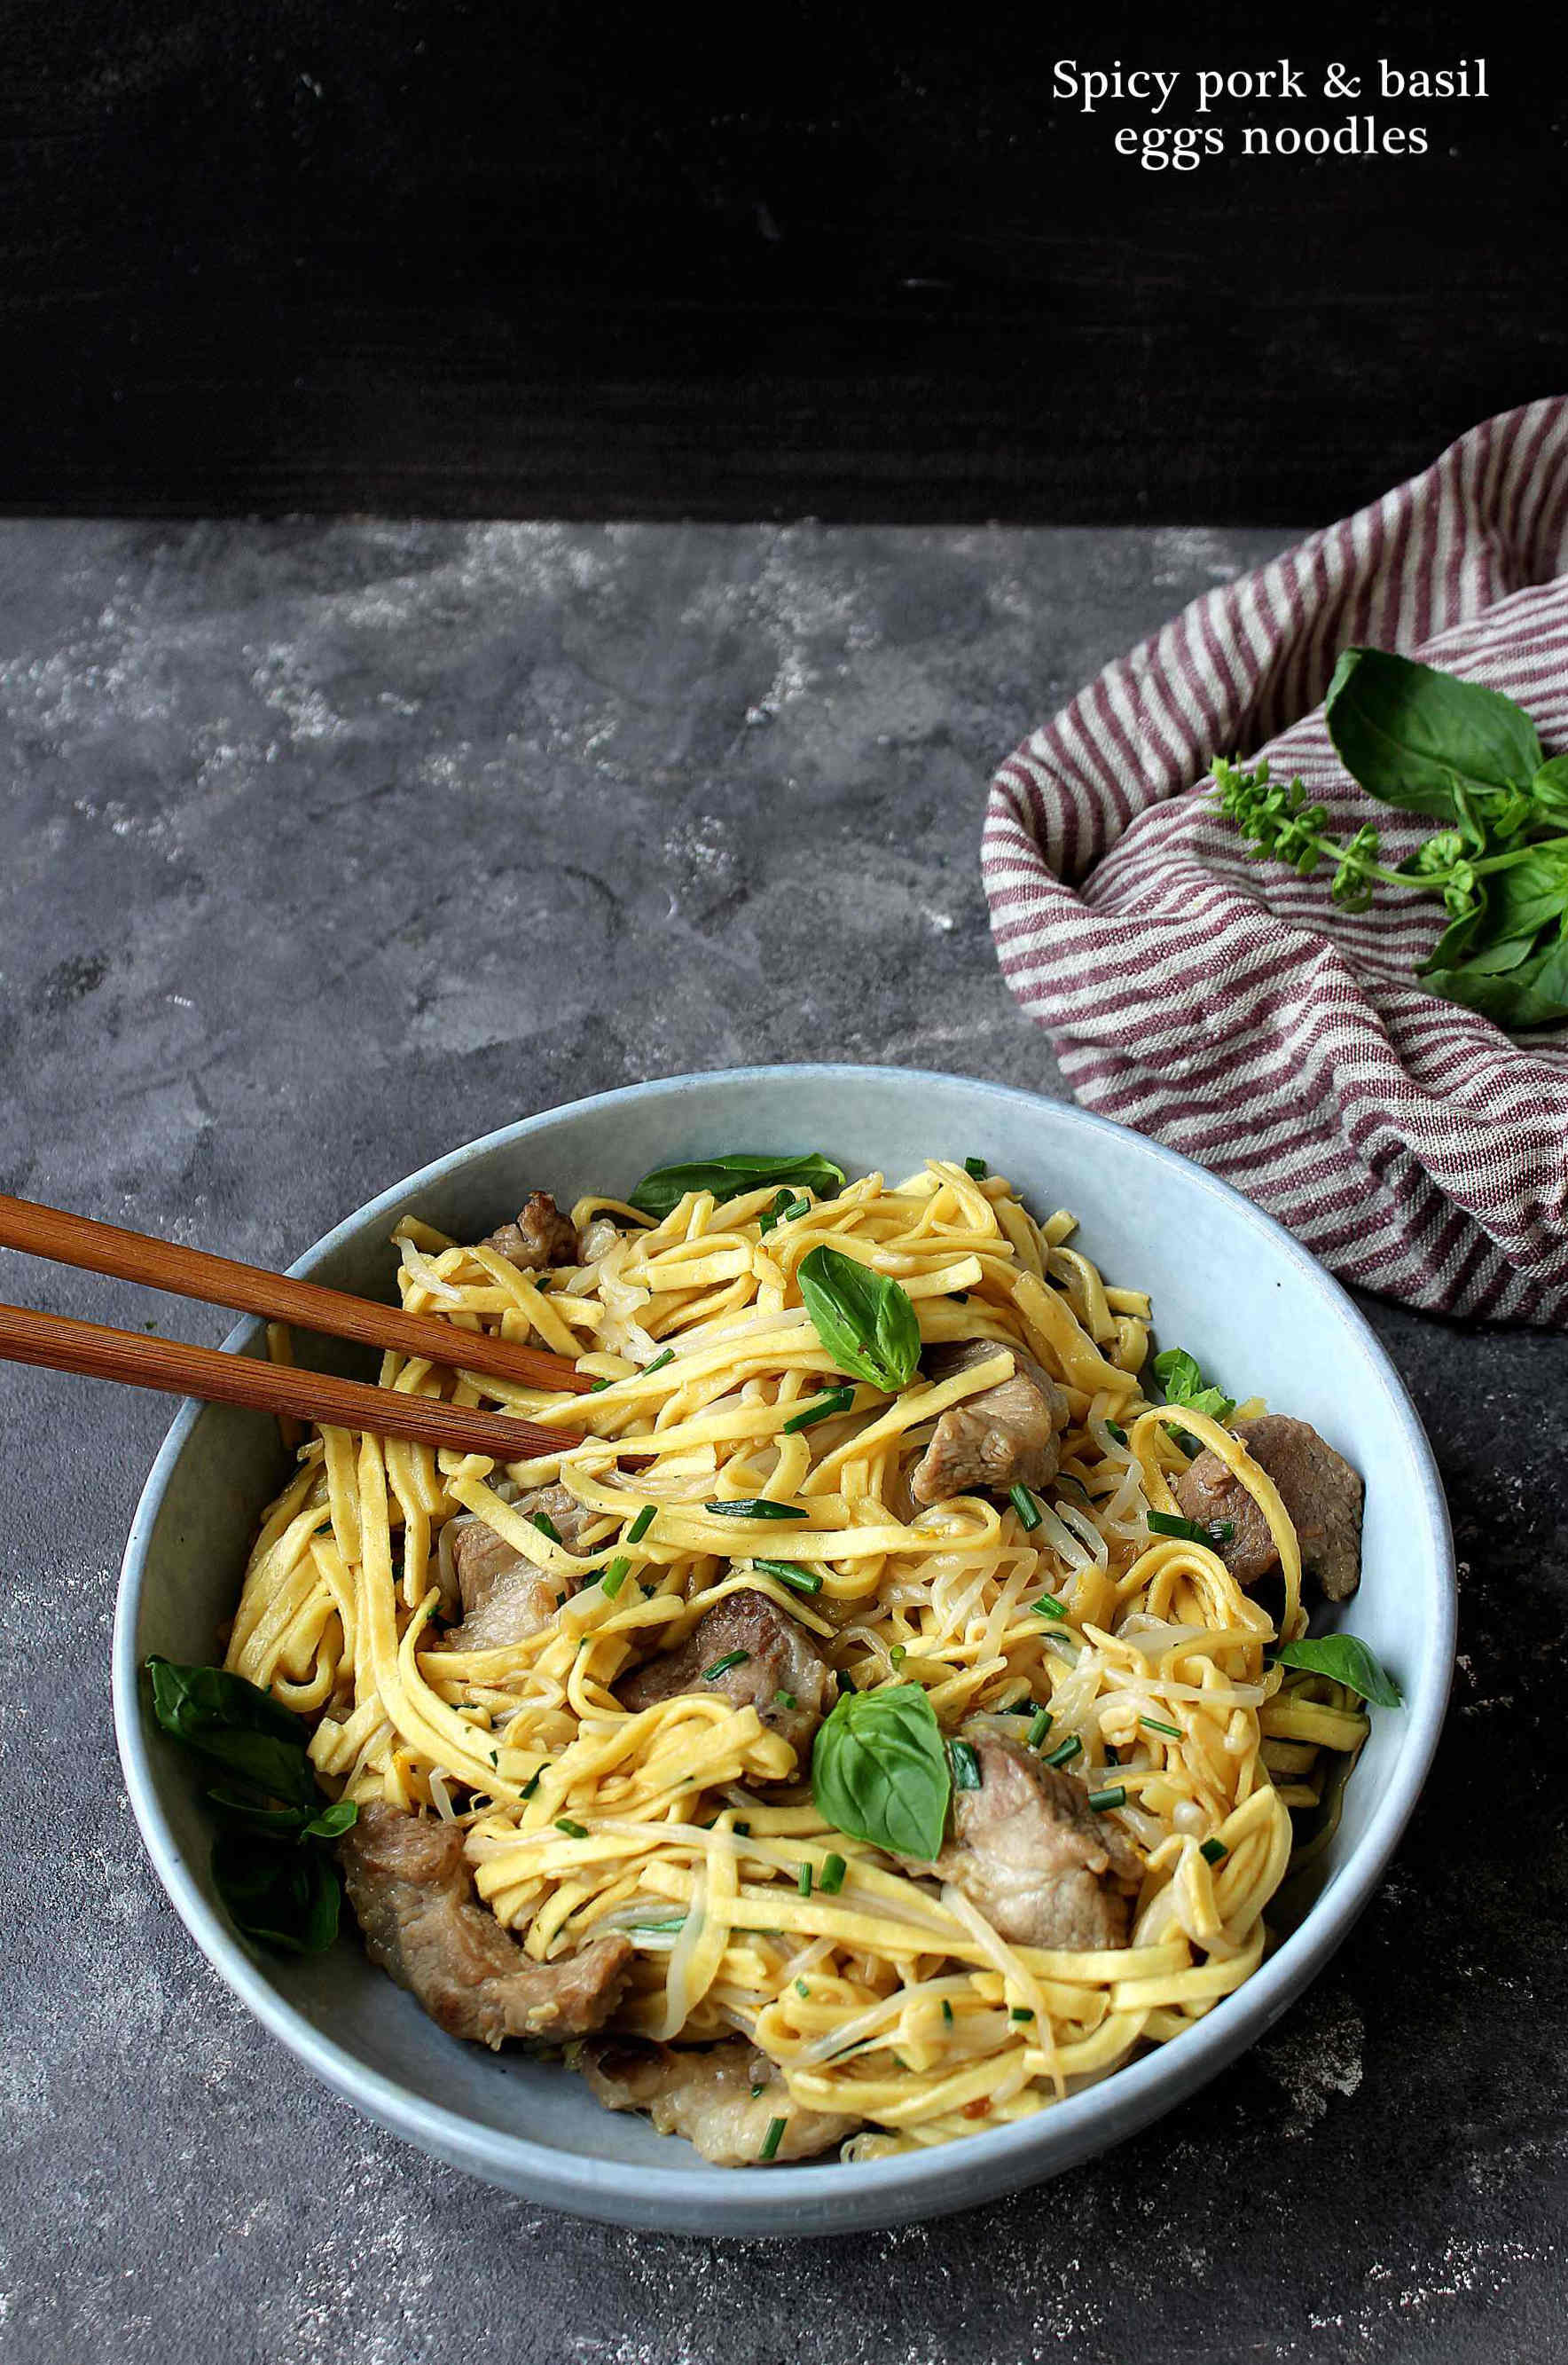 Spicy pork and basil egg noodles